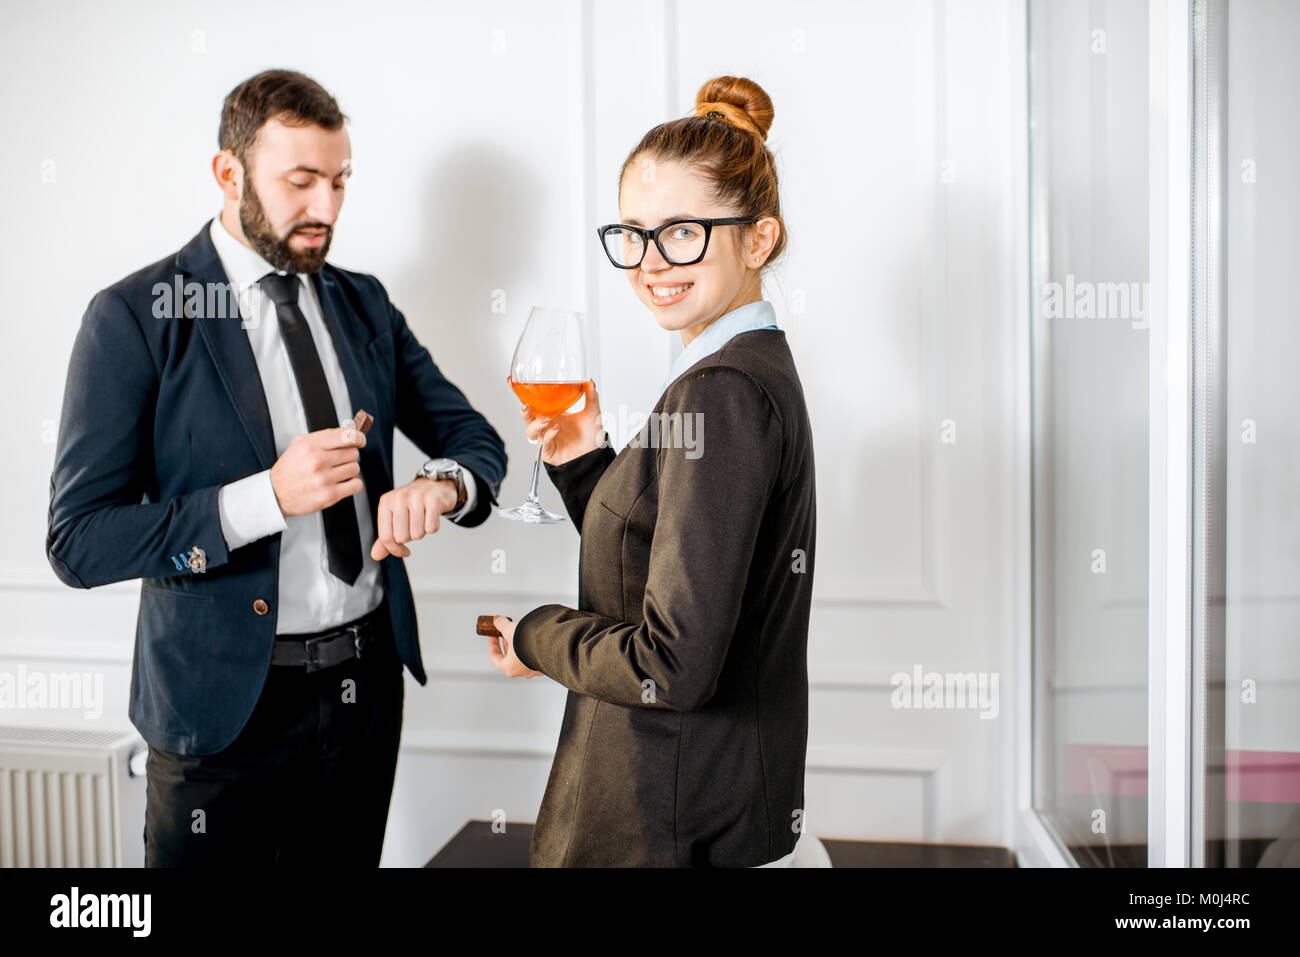 Couple during the business meeting - Stock Image